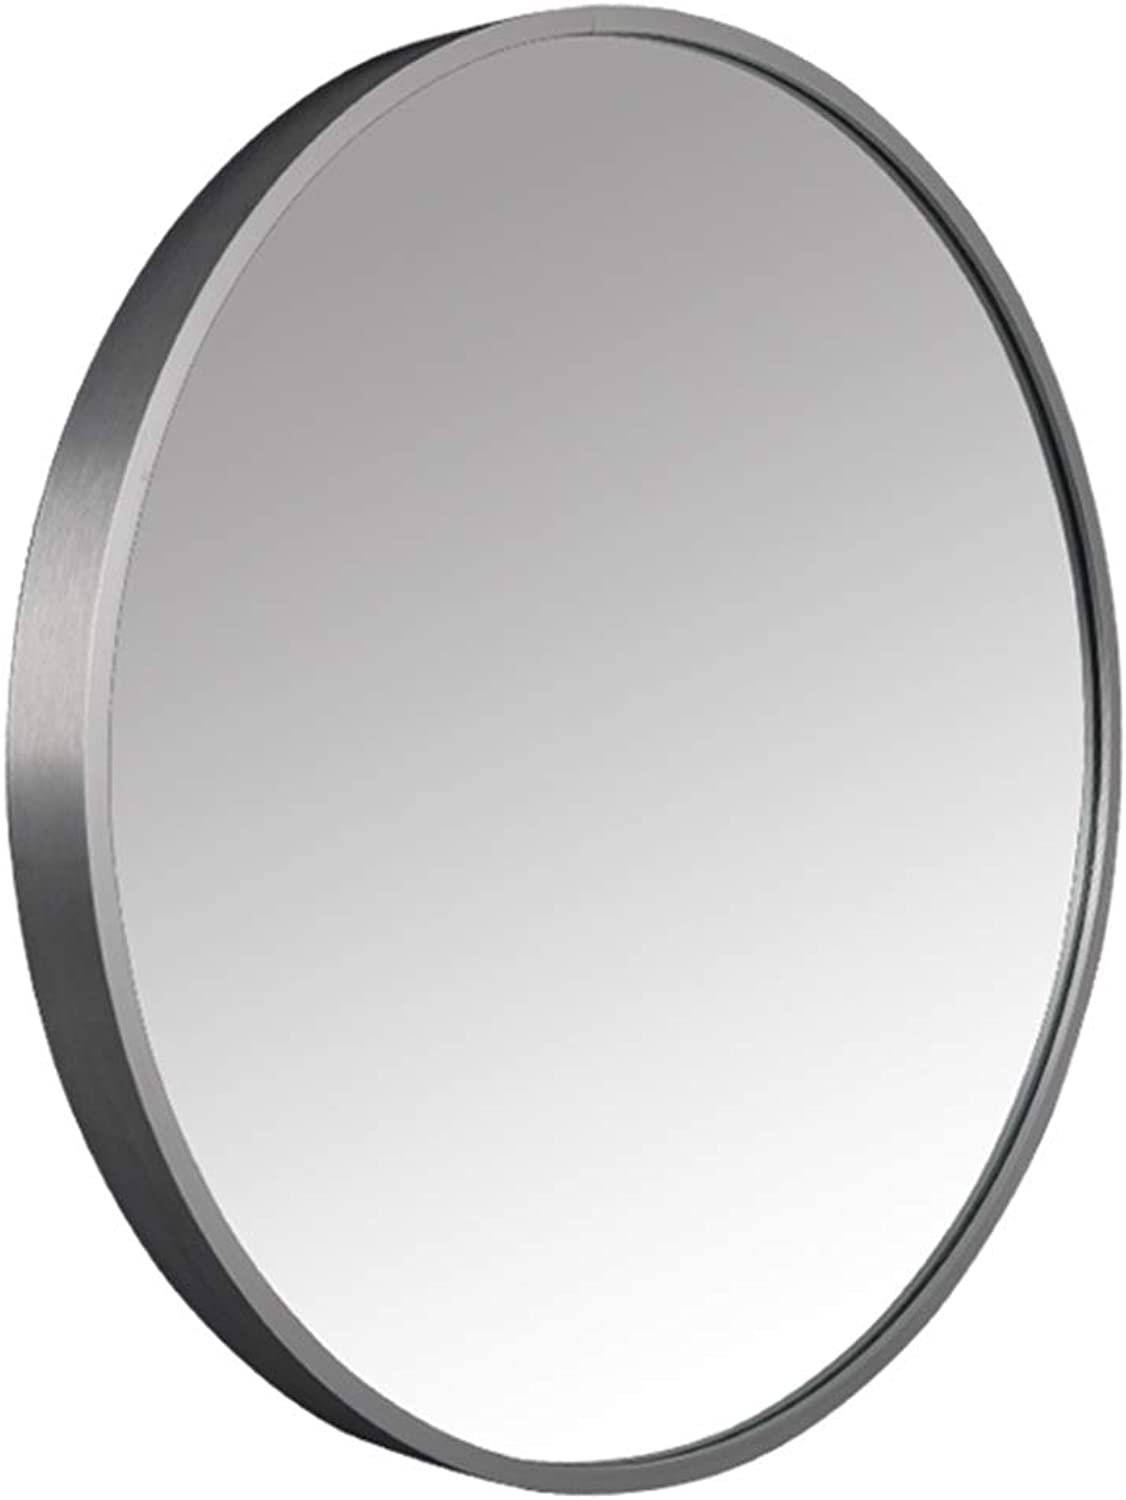 Round Wall Mirror,Bathroom Mirror,Metal Frame Durable and Sturdy,Clear Imaging,Hook Design,Suitable for Vanity,Bathroom,Bedroom,Gym,Hallway(50x50x4cm),Silver